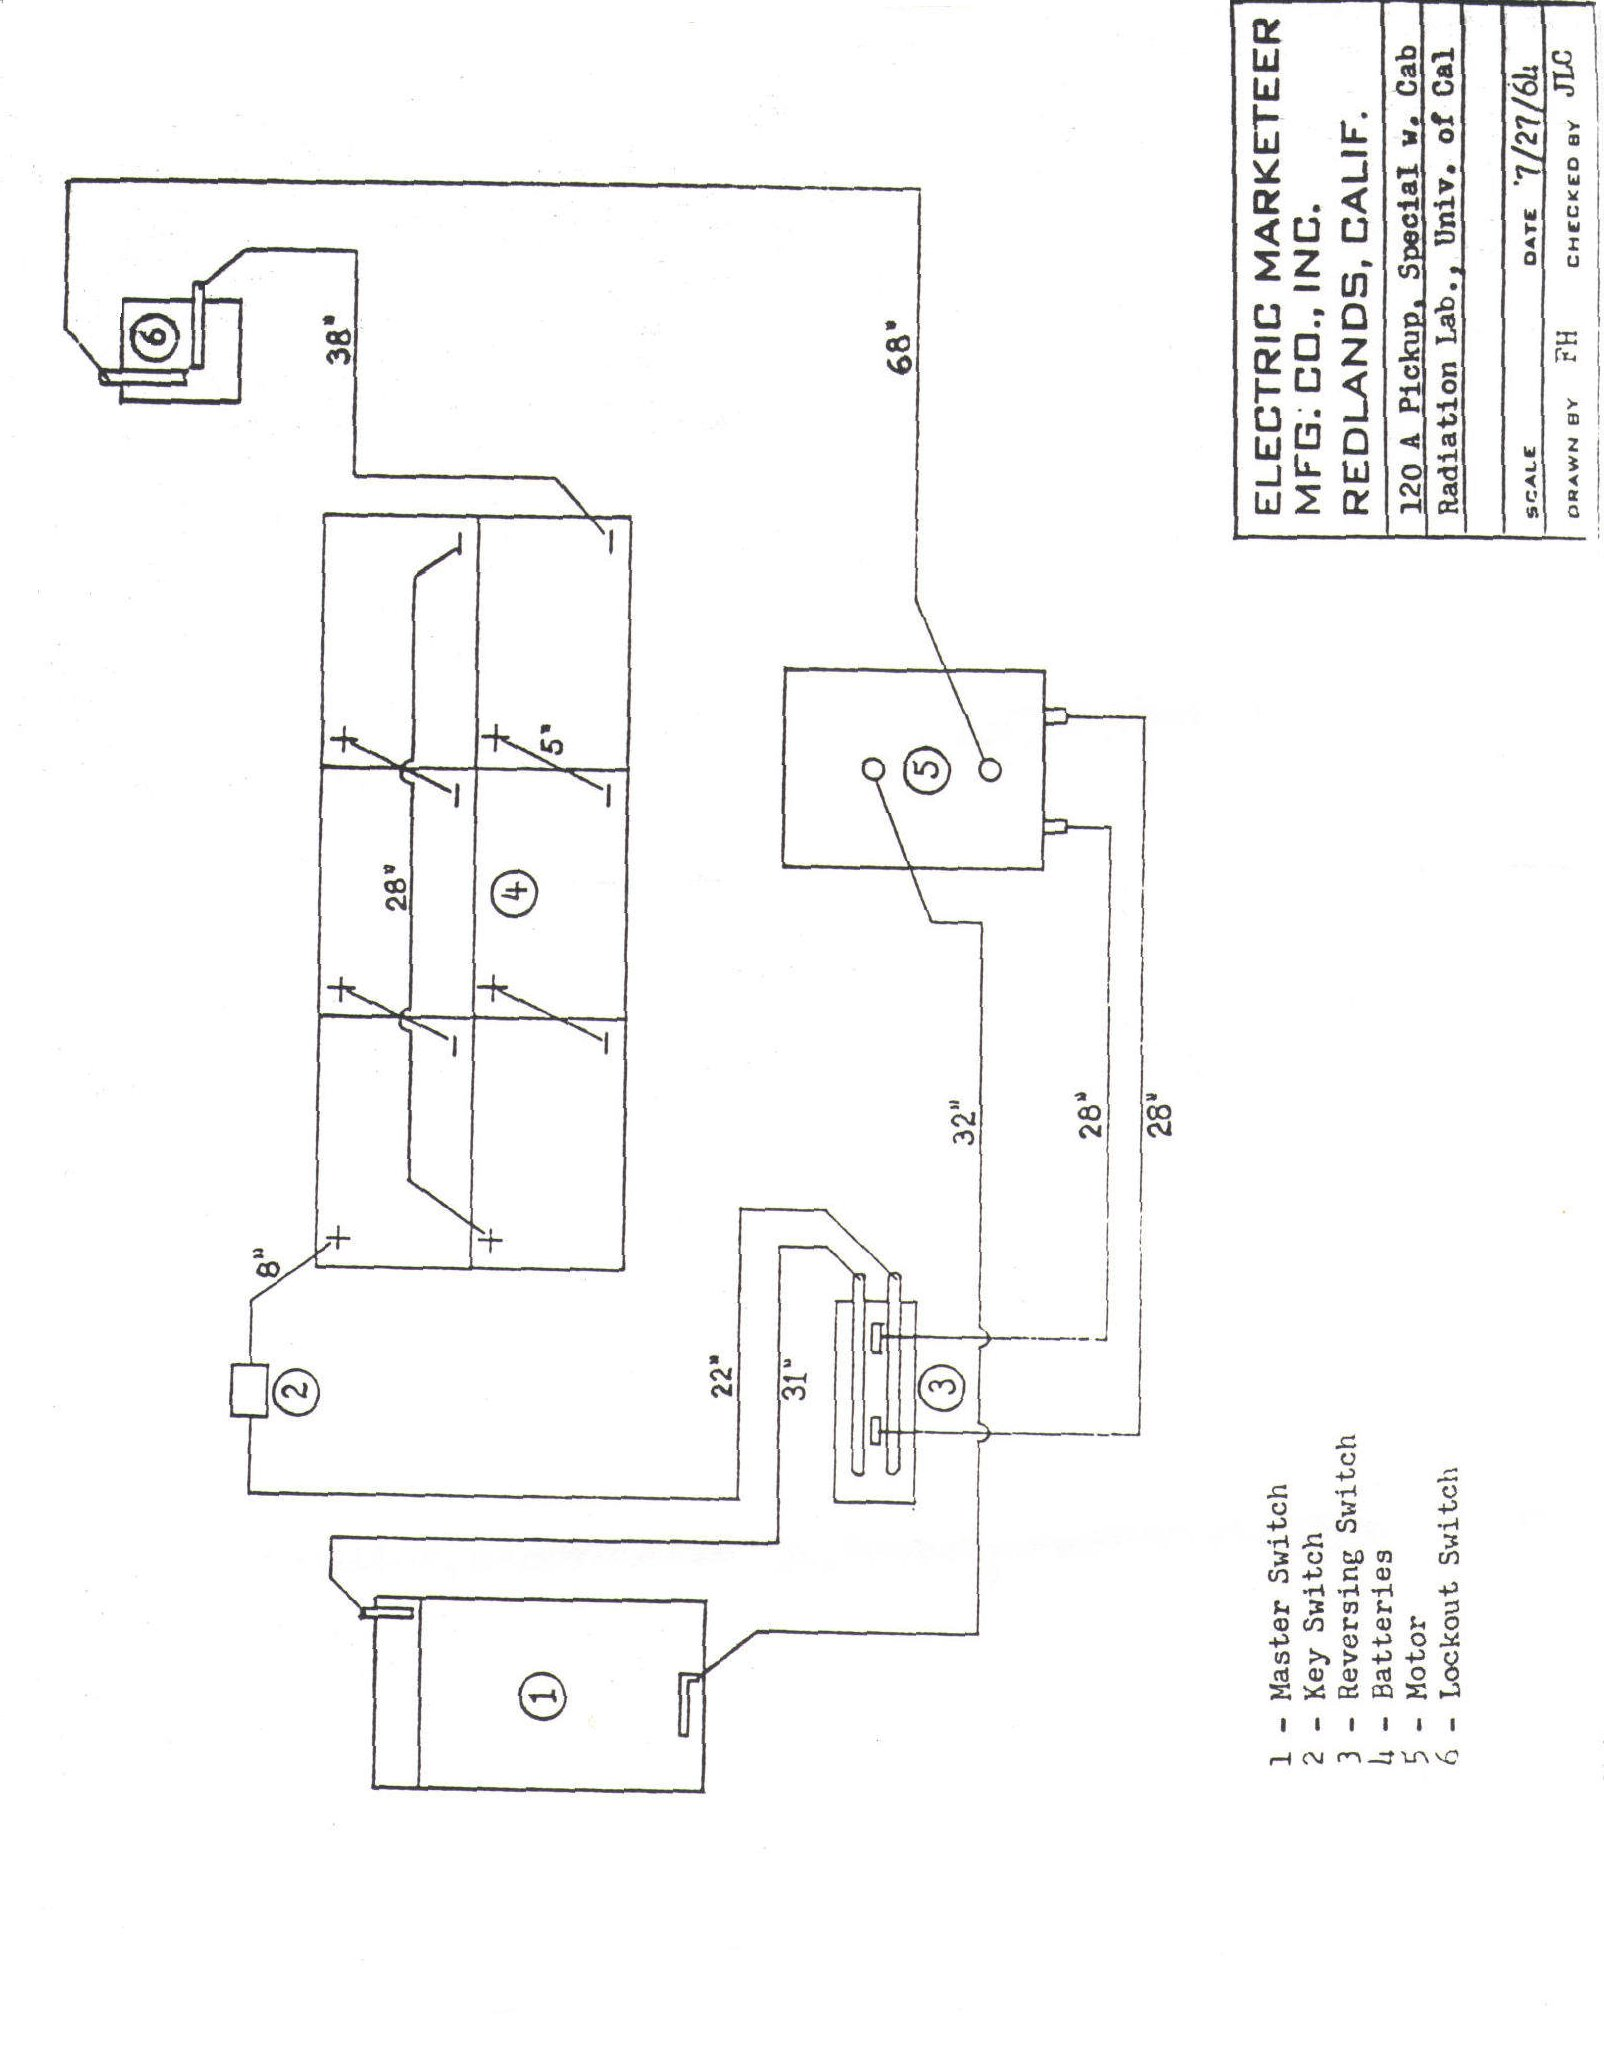 Melex 112 Golf Cart Wiring Diagram Trusted Wiring Diagram Melex Golf Cart  Wiring Dig Melex 212 Light Wiring Diagram Model